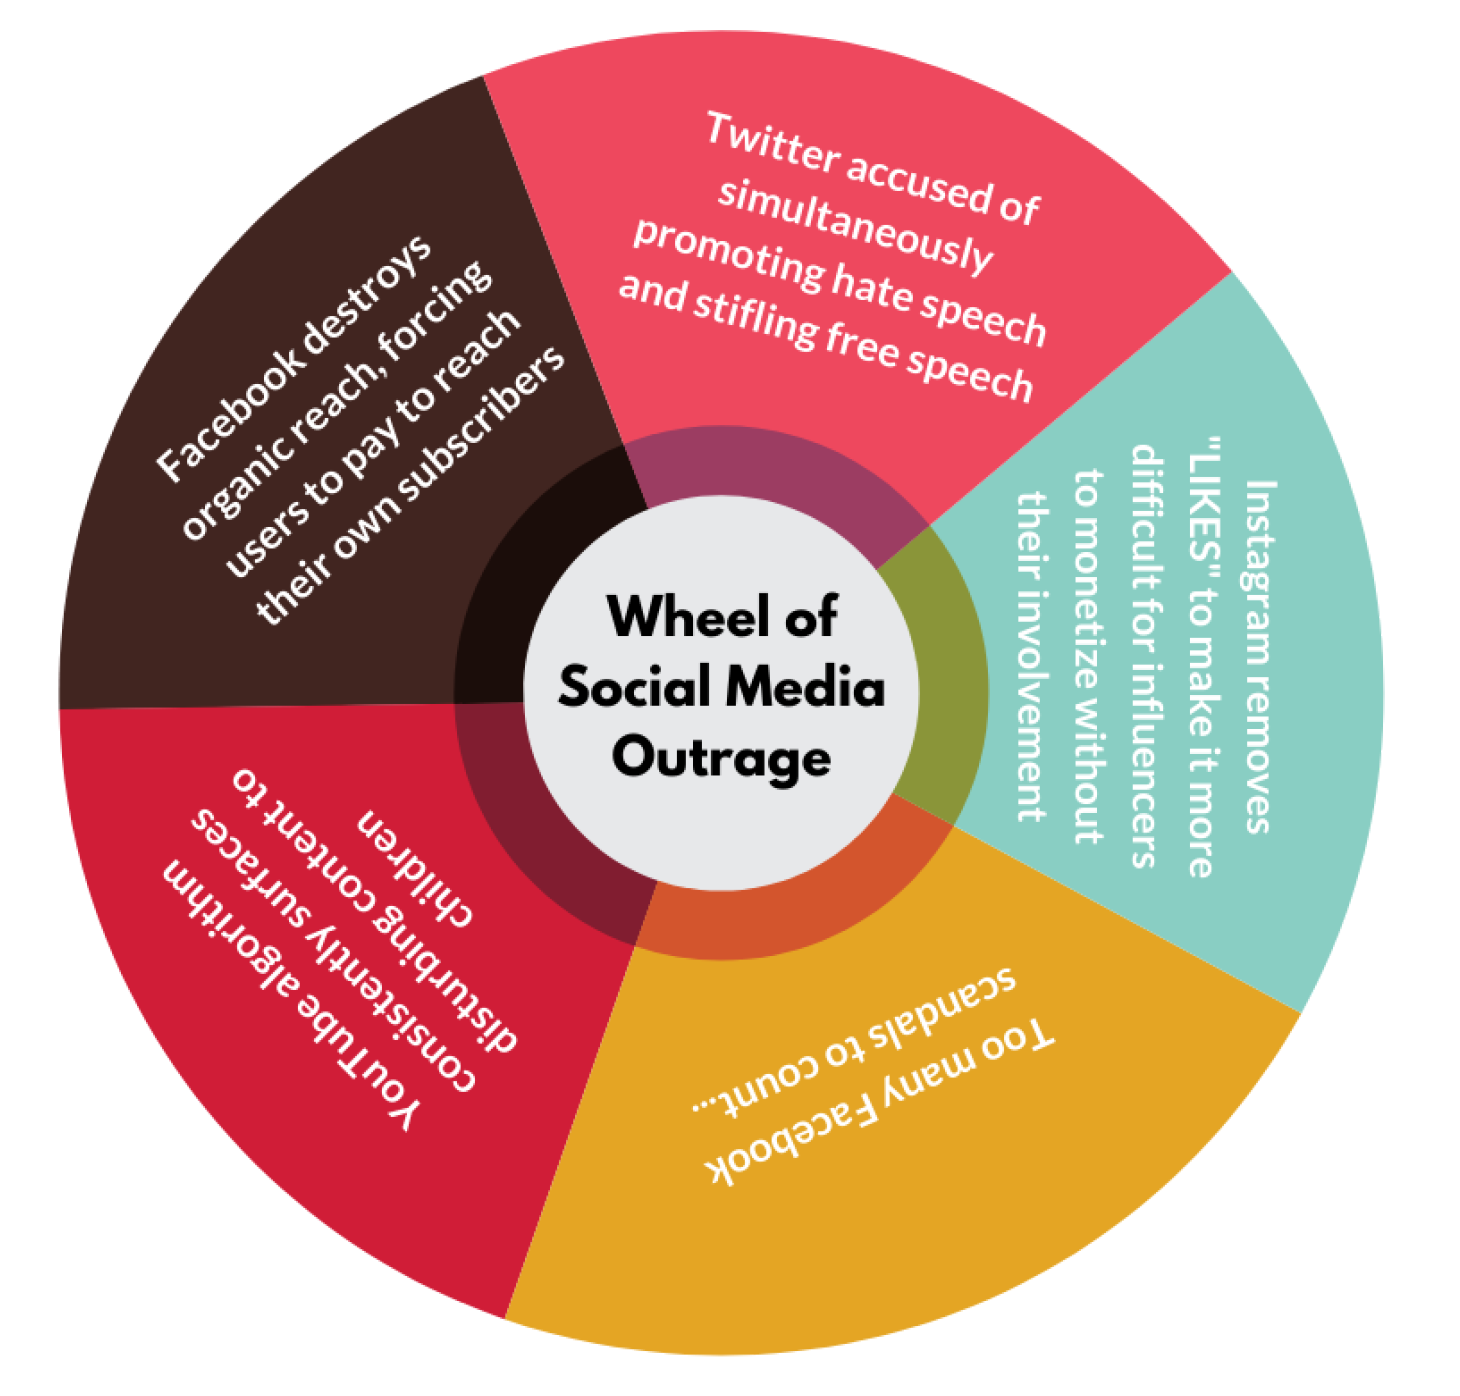 wheel of social media outrage